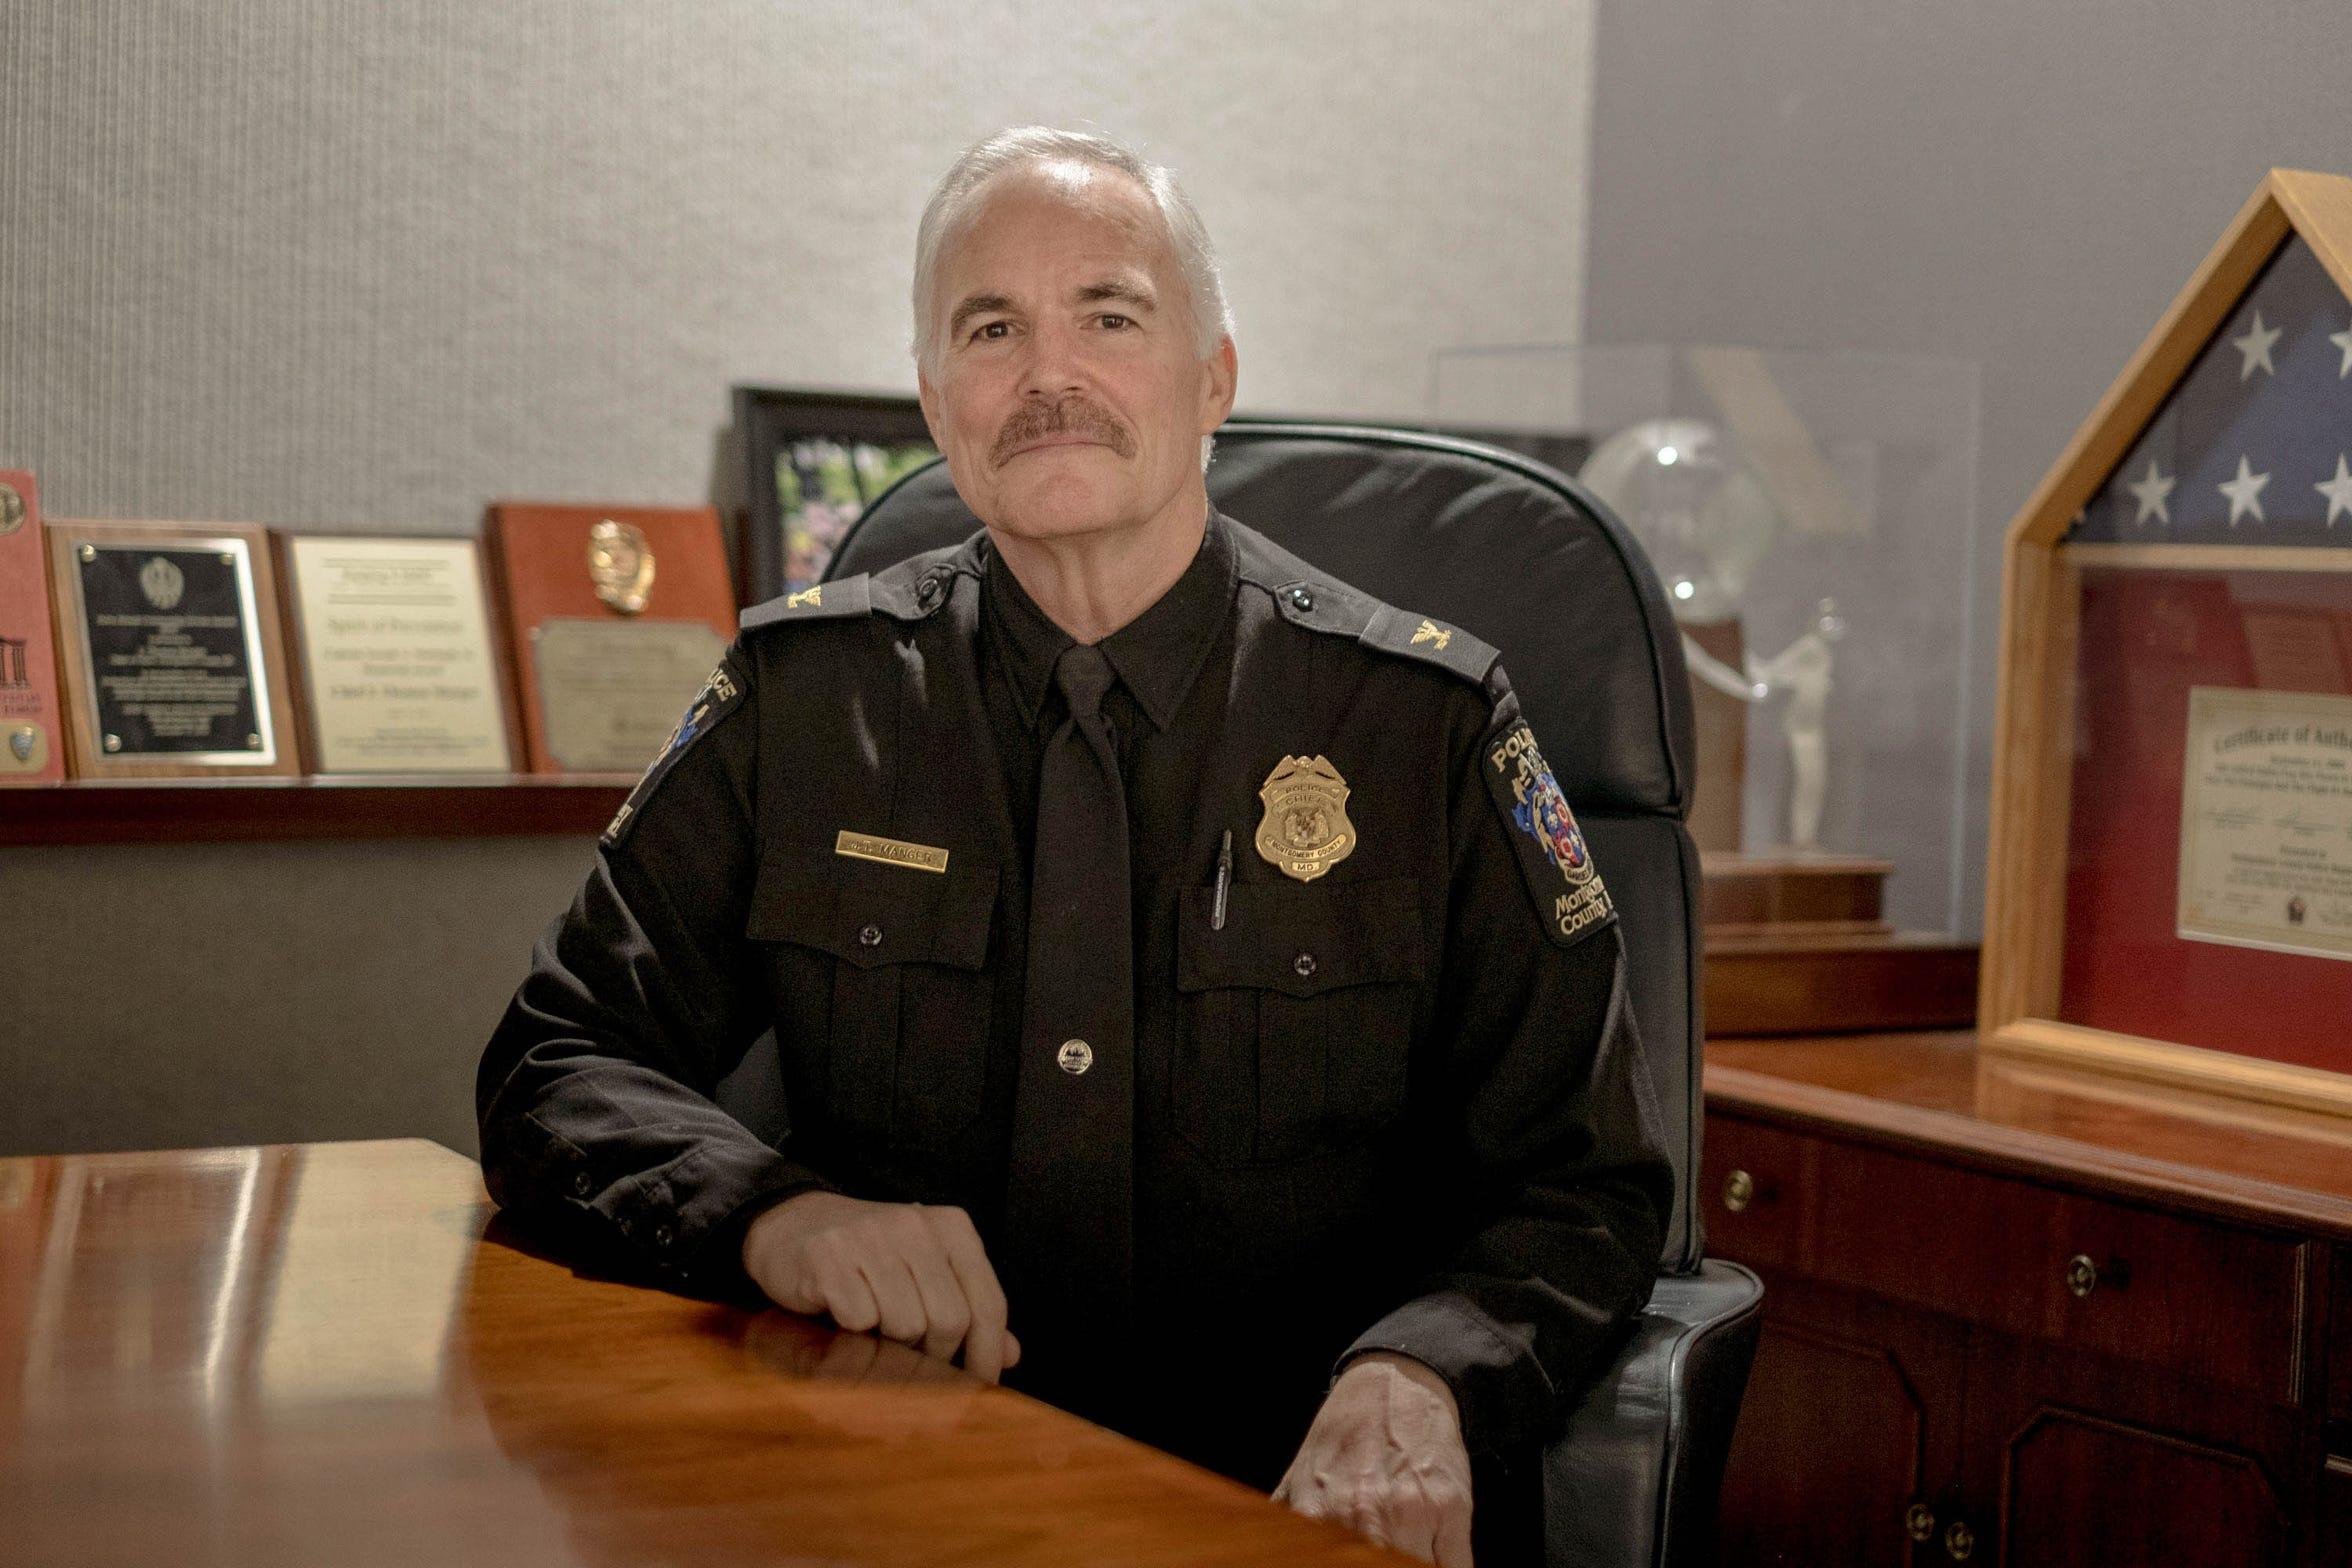 Montgomery County, Maryland, Police Chief Tom Manger has lobbied for the state to allow military veterans who are not citizens to be hired as police officers.